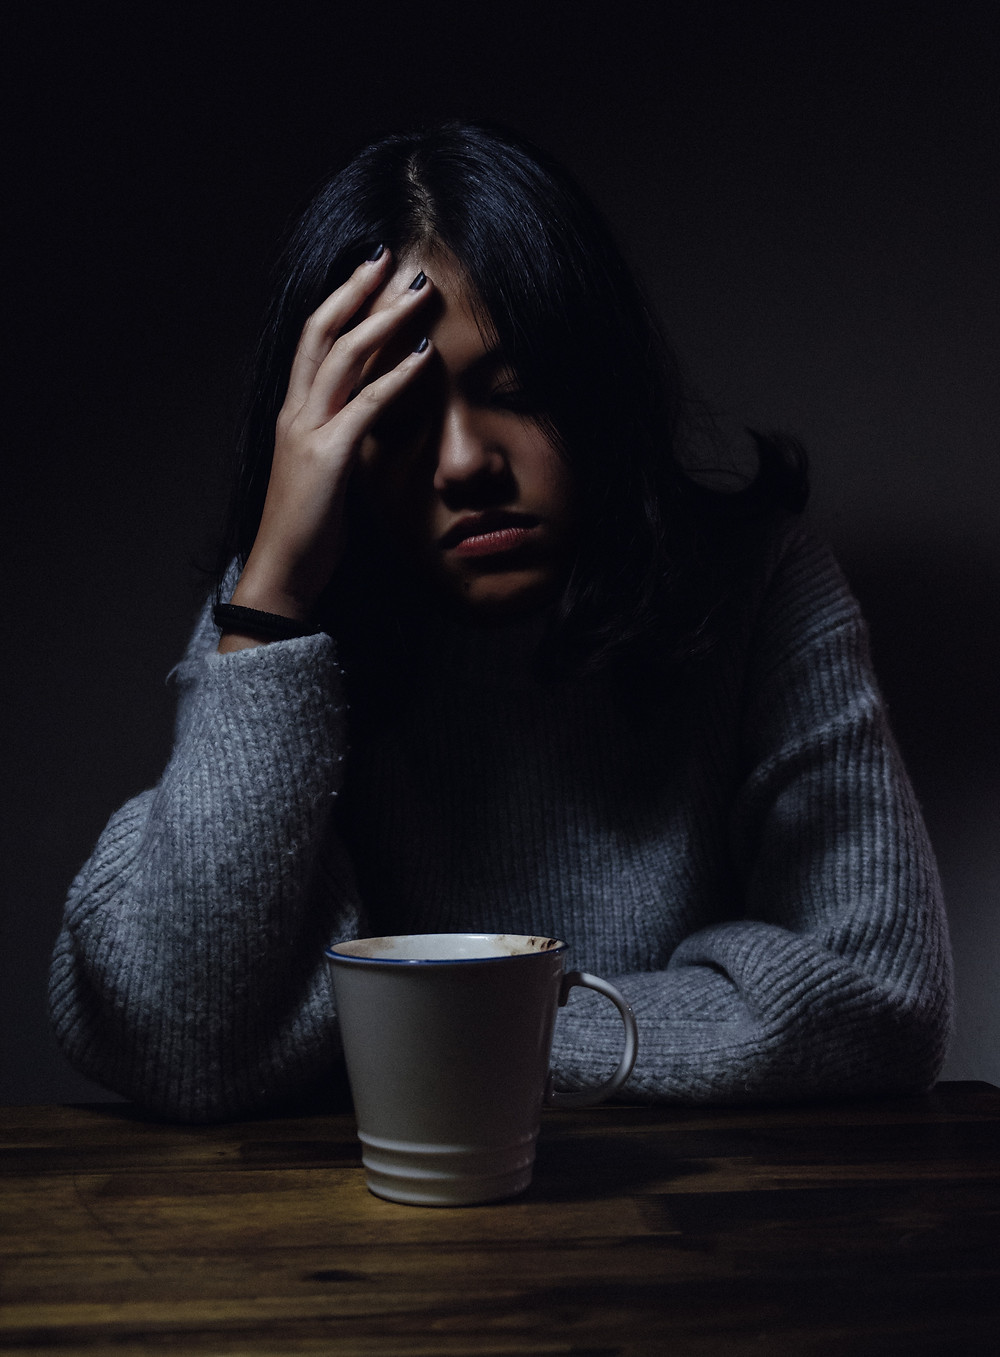 Woman sad with her hand on her head sitting on table with coffee cup